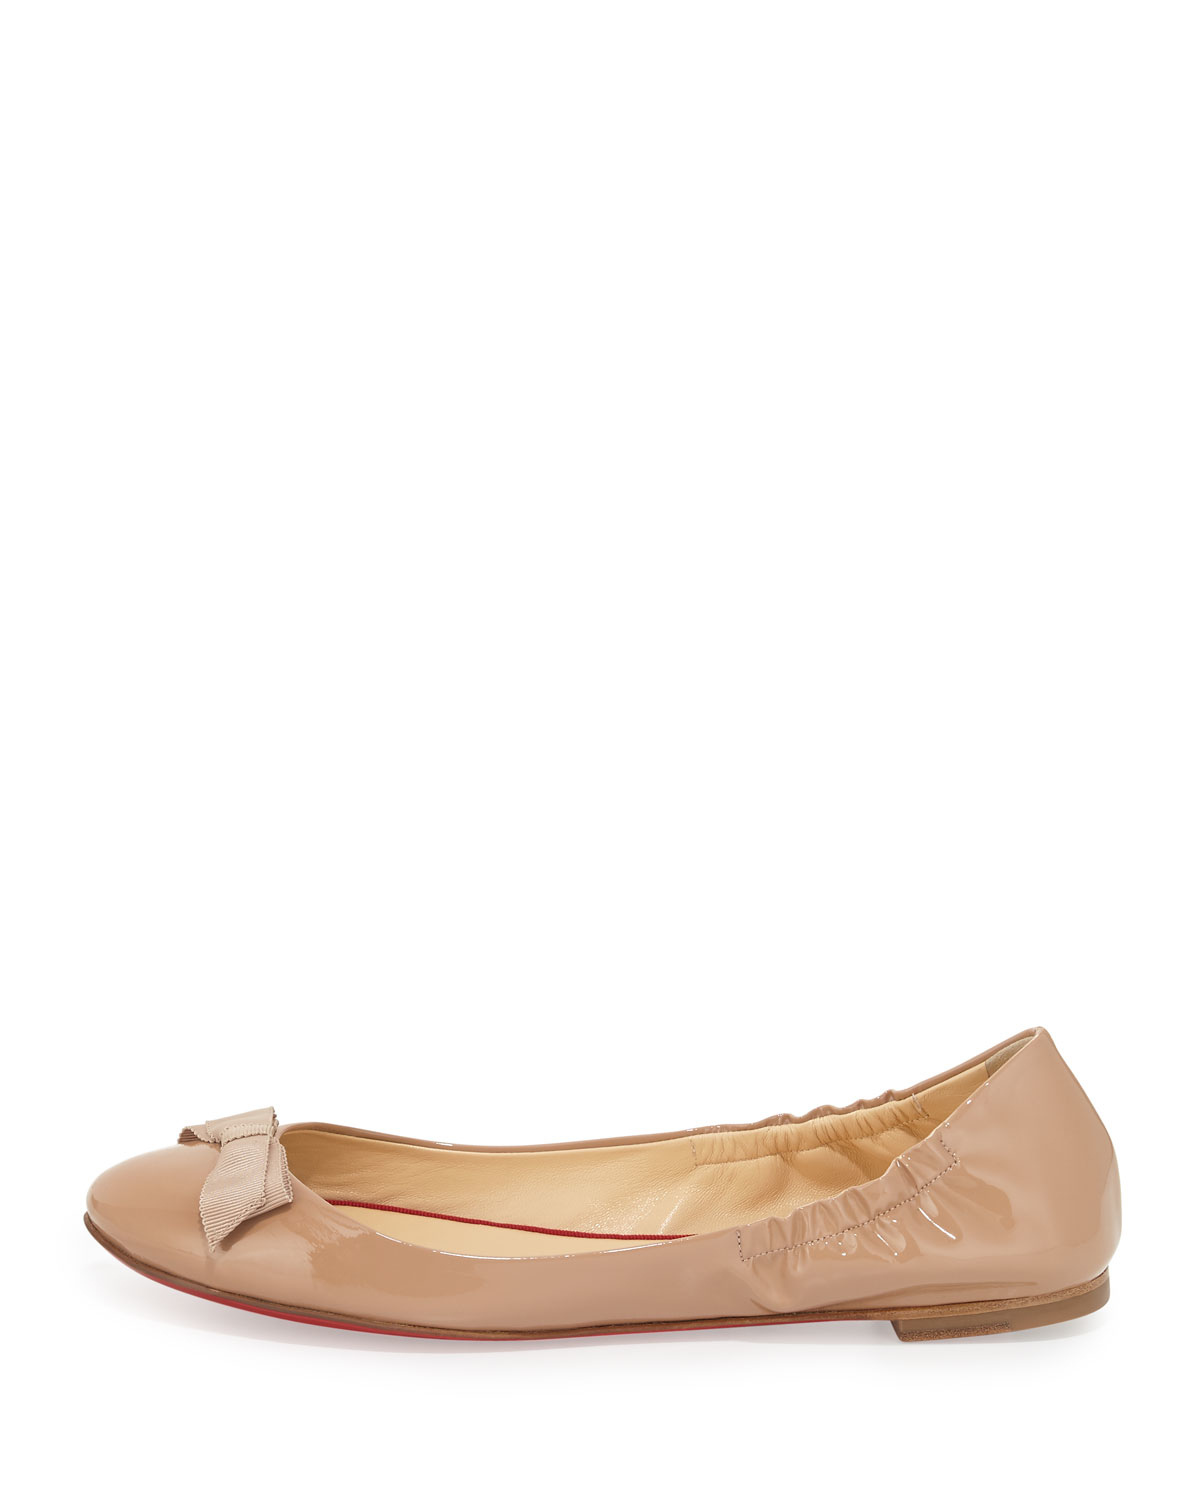 huge discount 1916c a814e Christian Louboutin Natural Gloriana Patent-Leather Ballet Flats